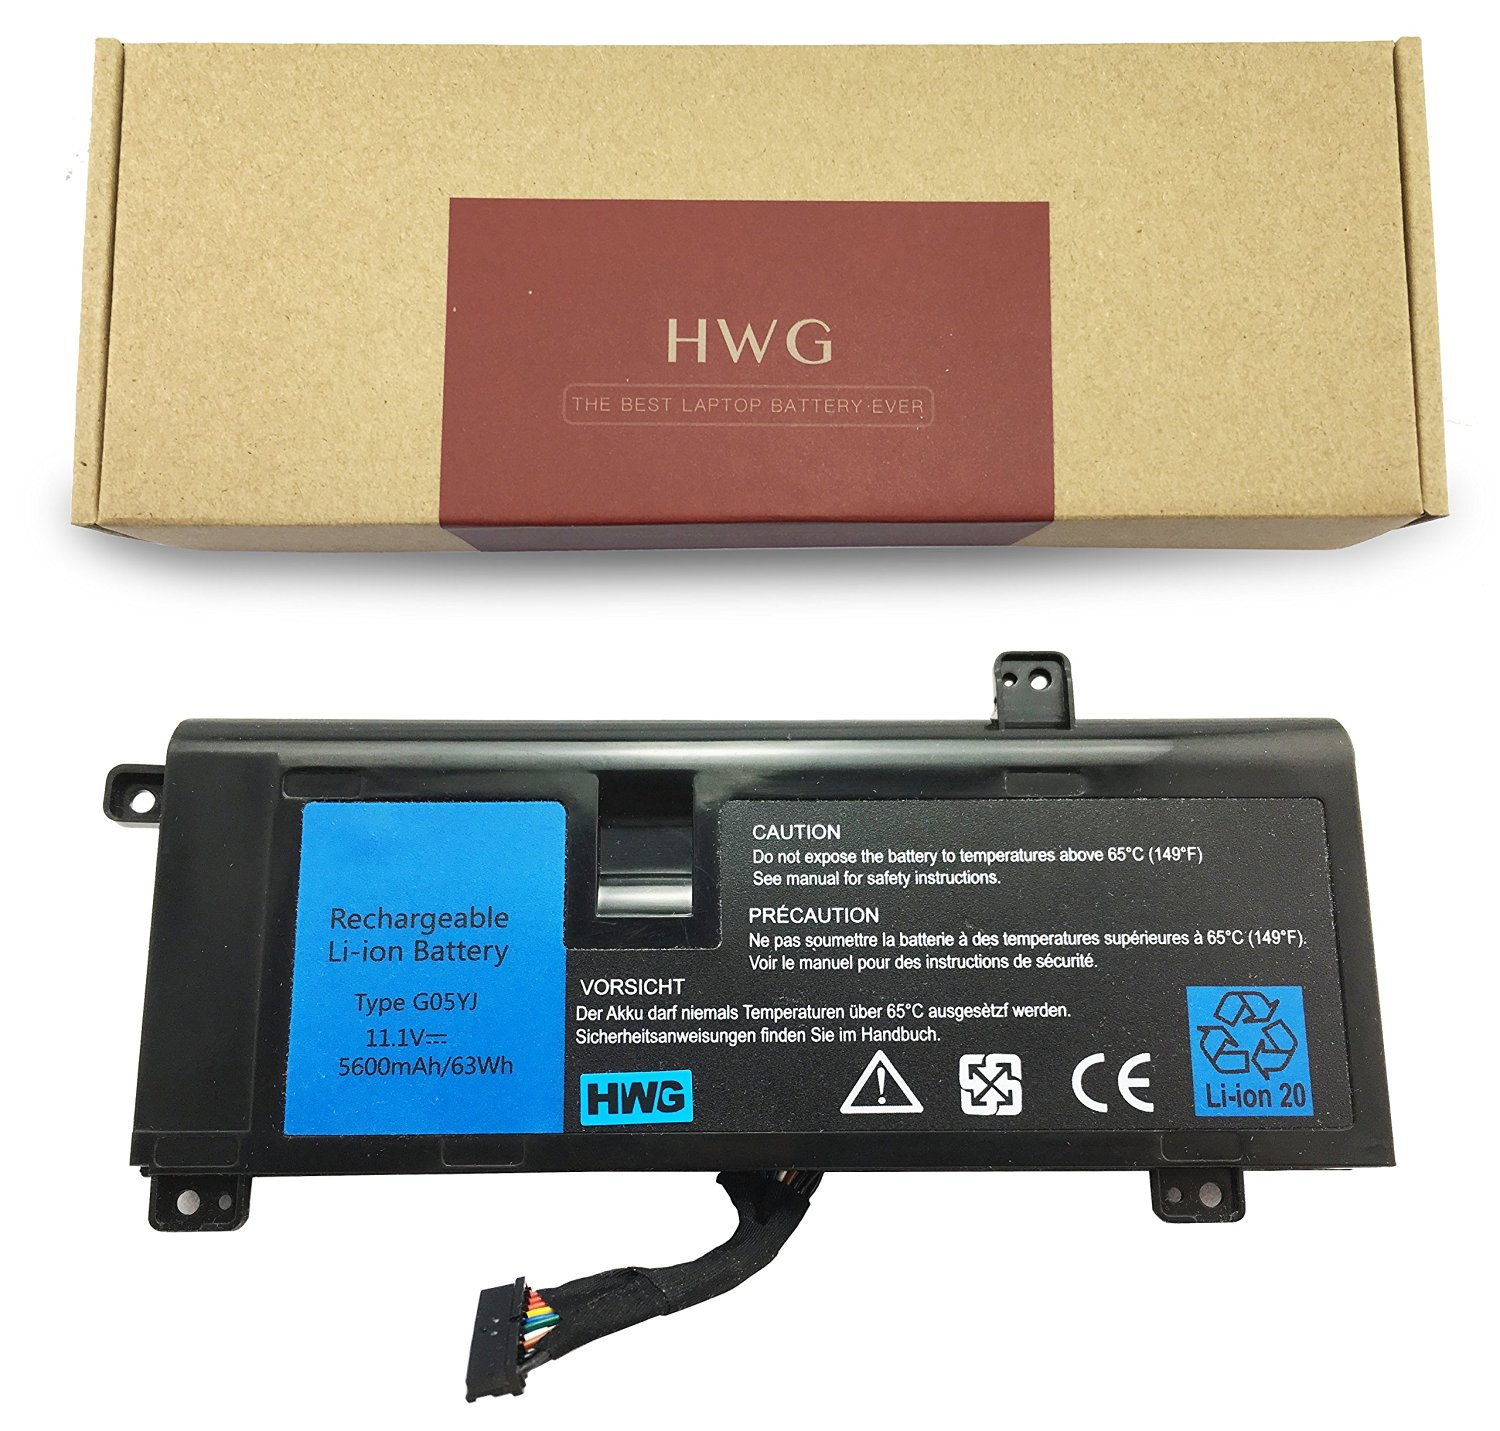 HWG™ Laptop Replacement Battery (G05YJ) For DELL Alienware 14 A14 M14X R3 R4 Series Alienware 14D-1528 Alienware G05YJ 0G05YJ Y3PN0 8X70T